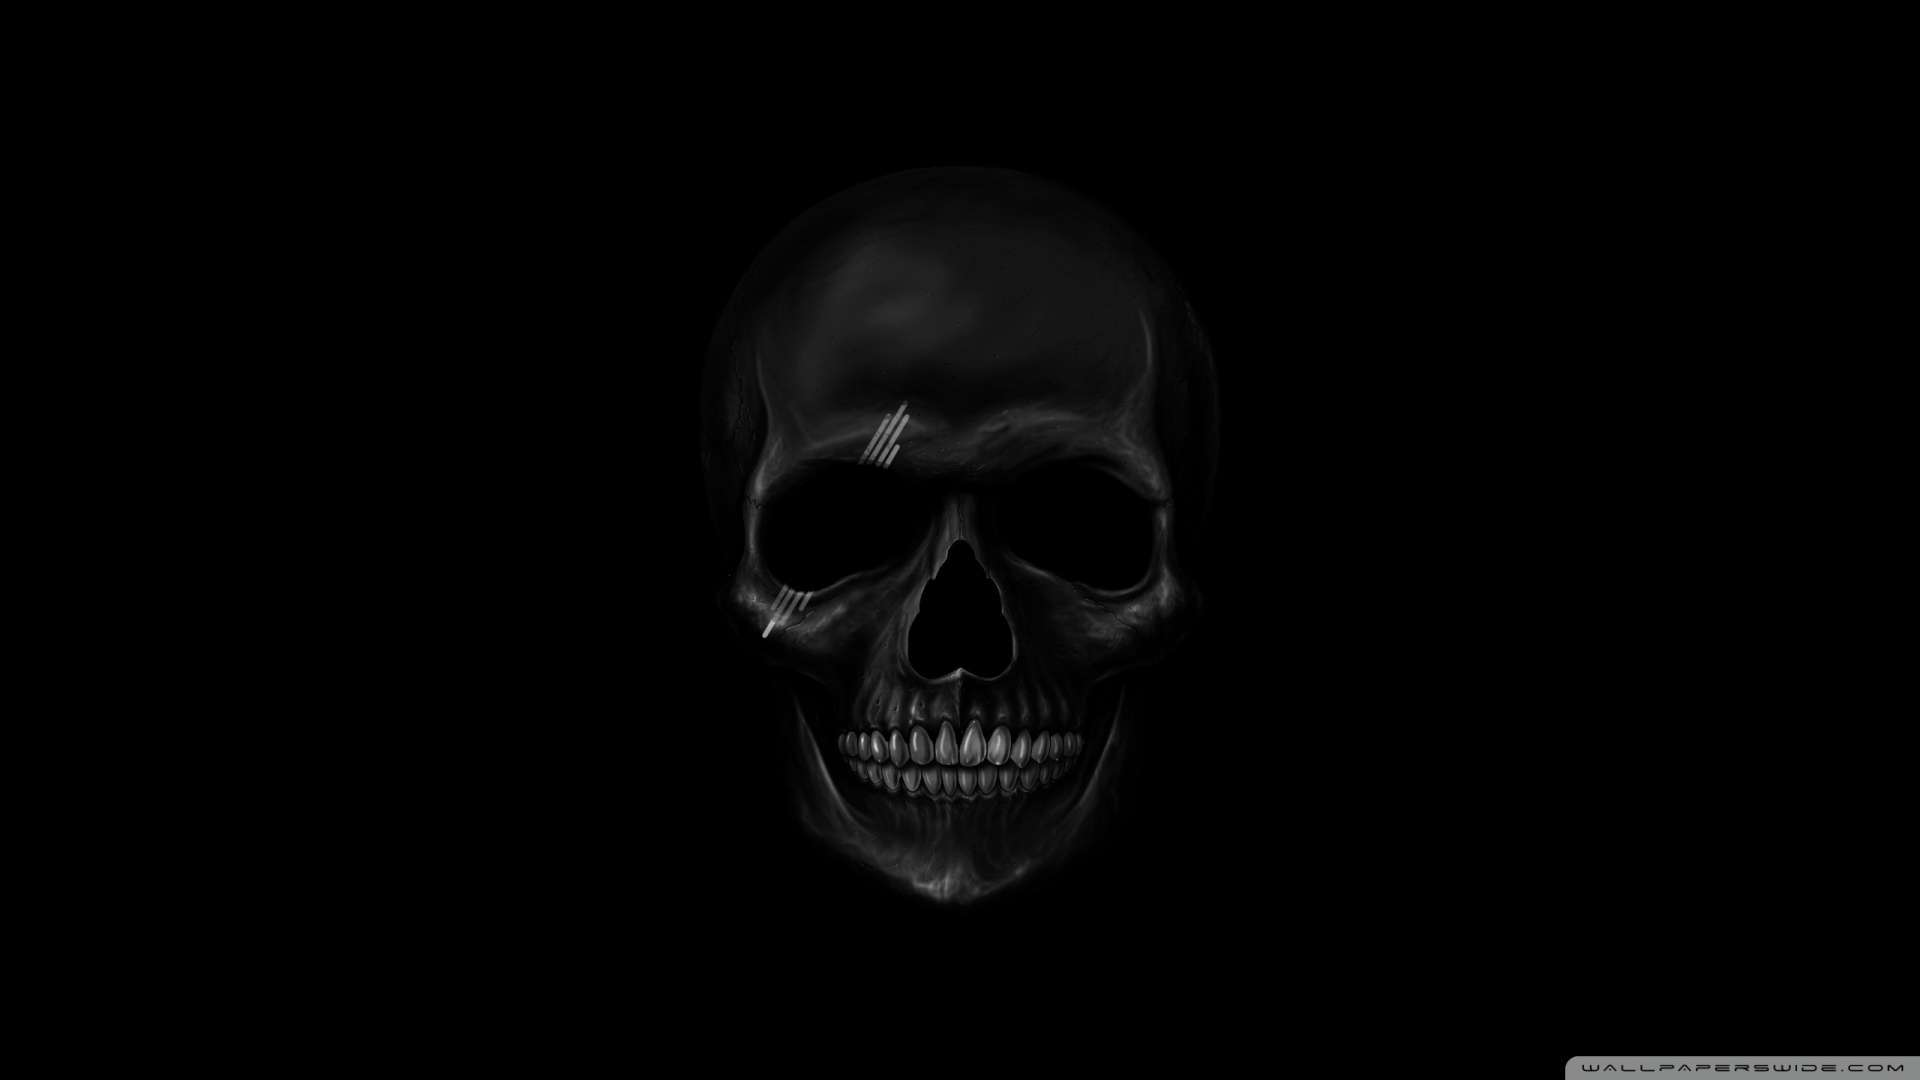 Wallpaper Black Skull Wallpaper 1080p HD Upload at February 12 2014 1920x1080